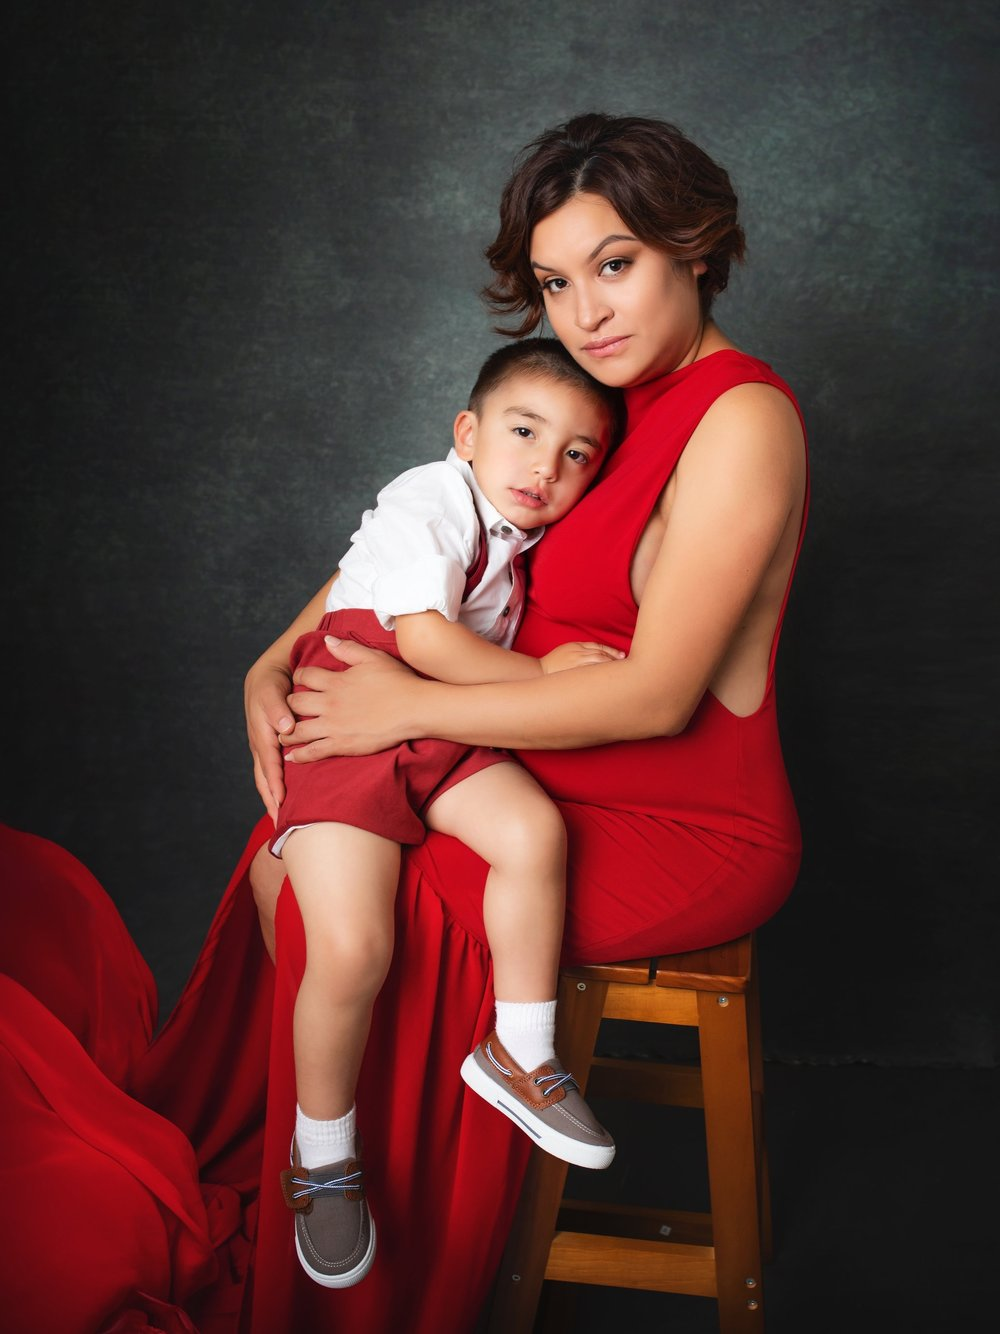 I wasn't expecting to bring my little boy to my Maternity session, but Maria encouraged me. I was worry he wouldn't cooperate, I am so glad we brought him. I now have a gorgeous portrait of my two babies. - -Michelle Torrez